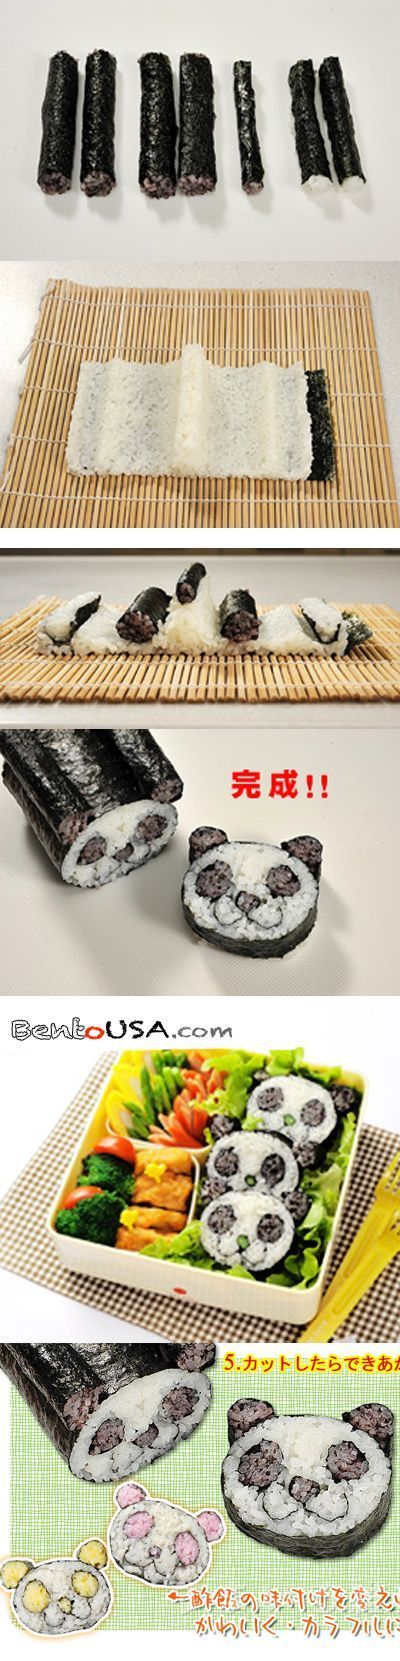 how to make panda sushi maki roll View The Recipe Details